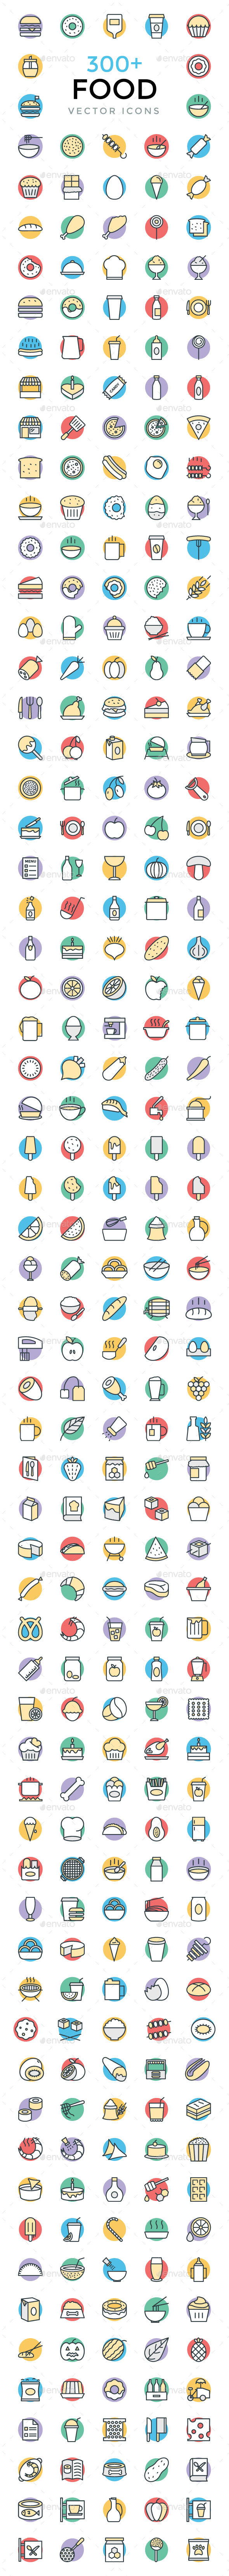 300+ Food Vector Icons - Icons